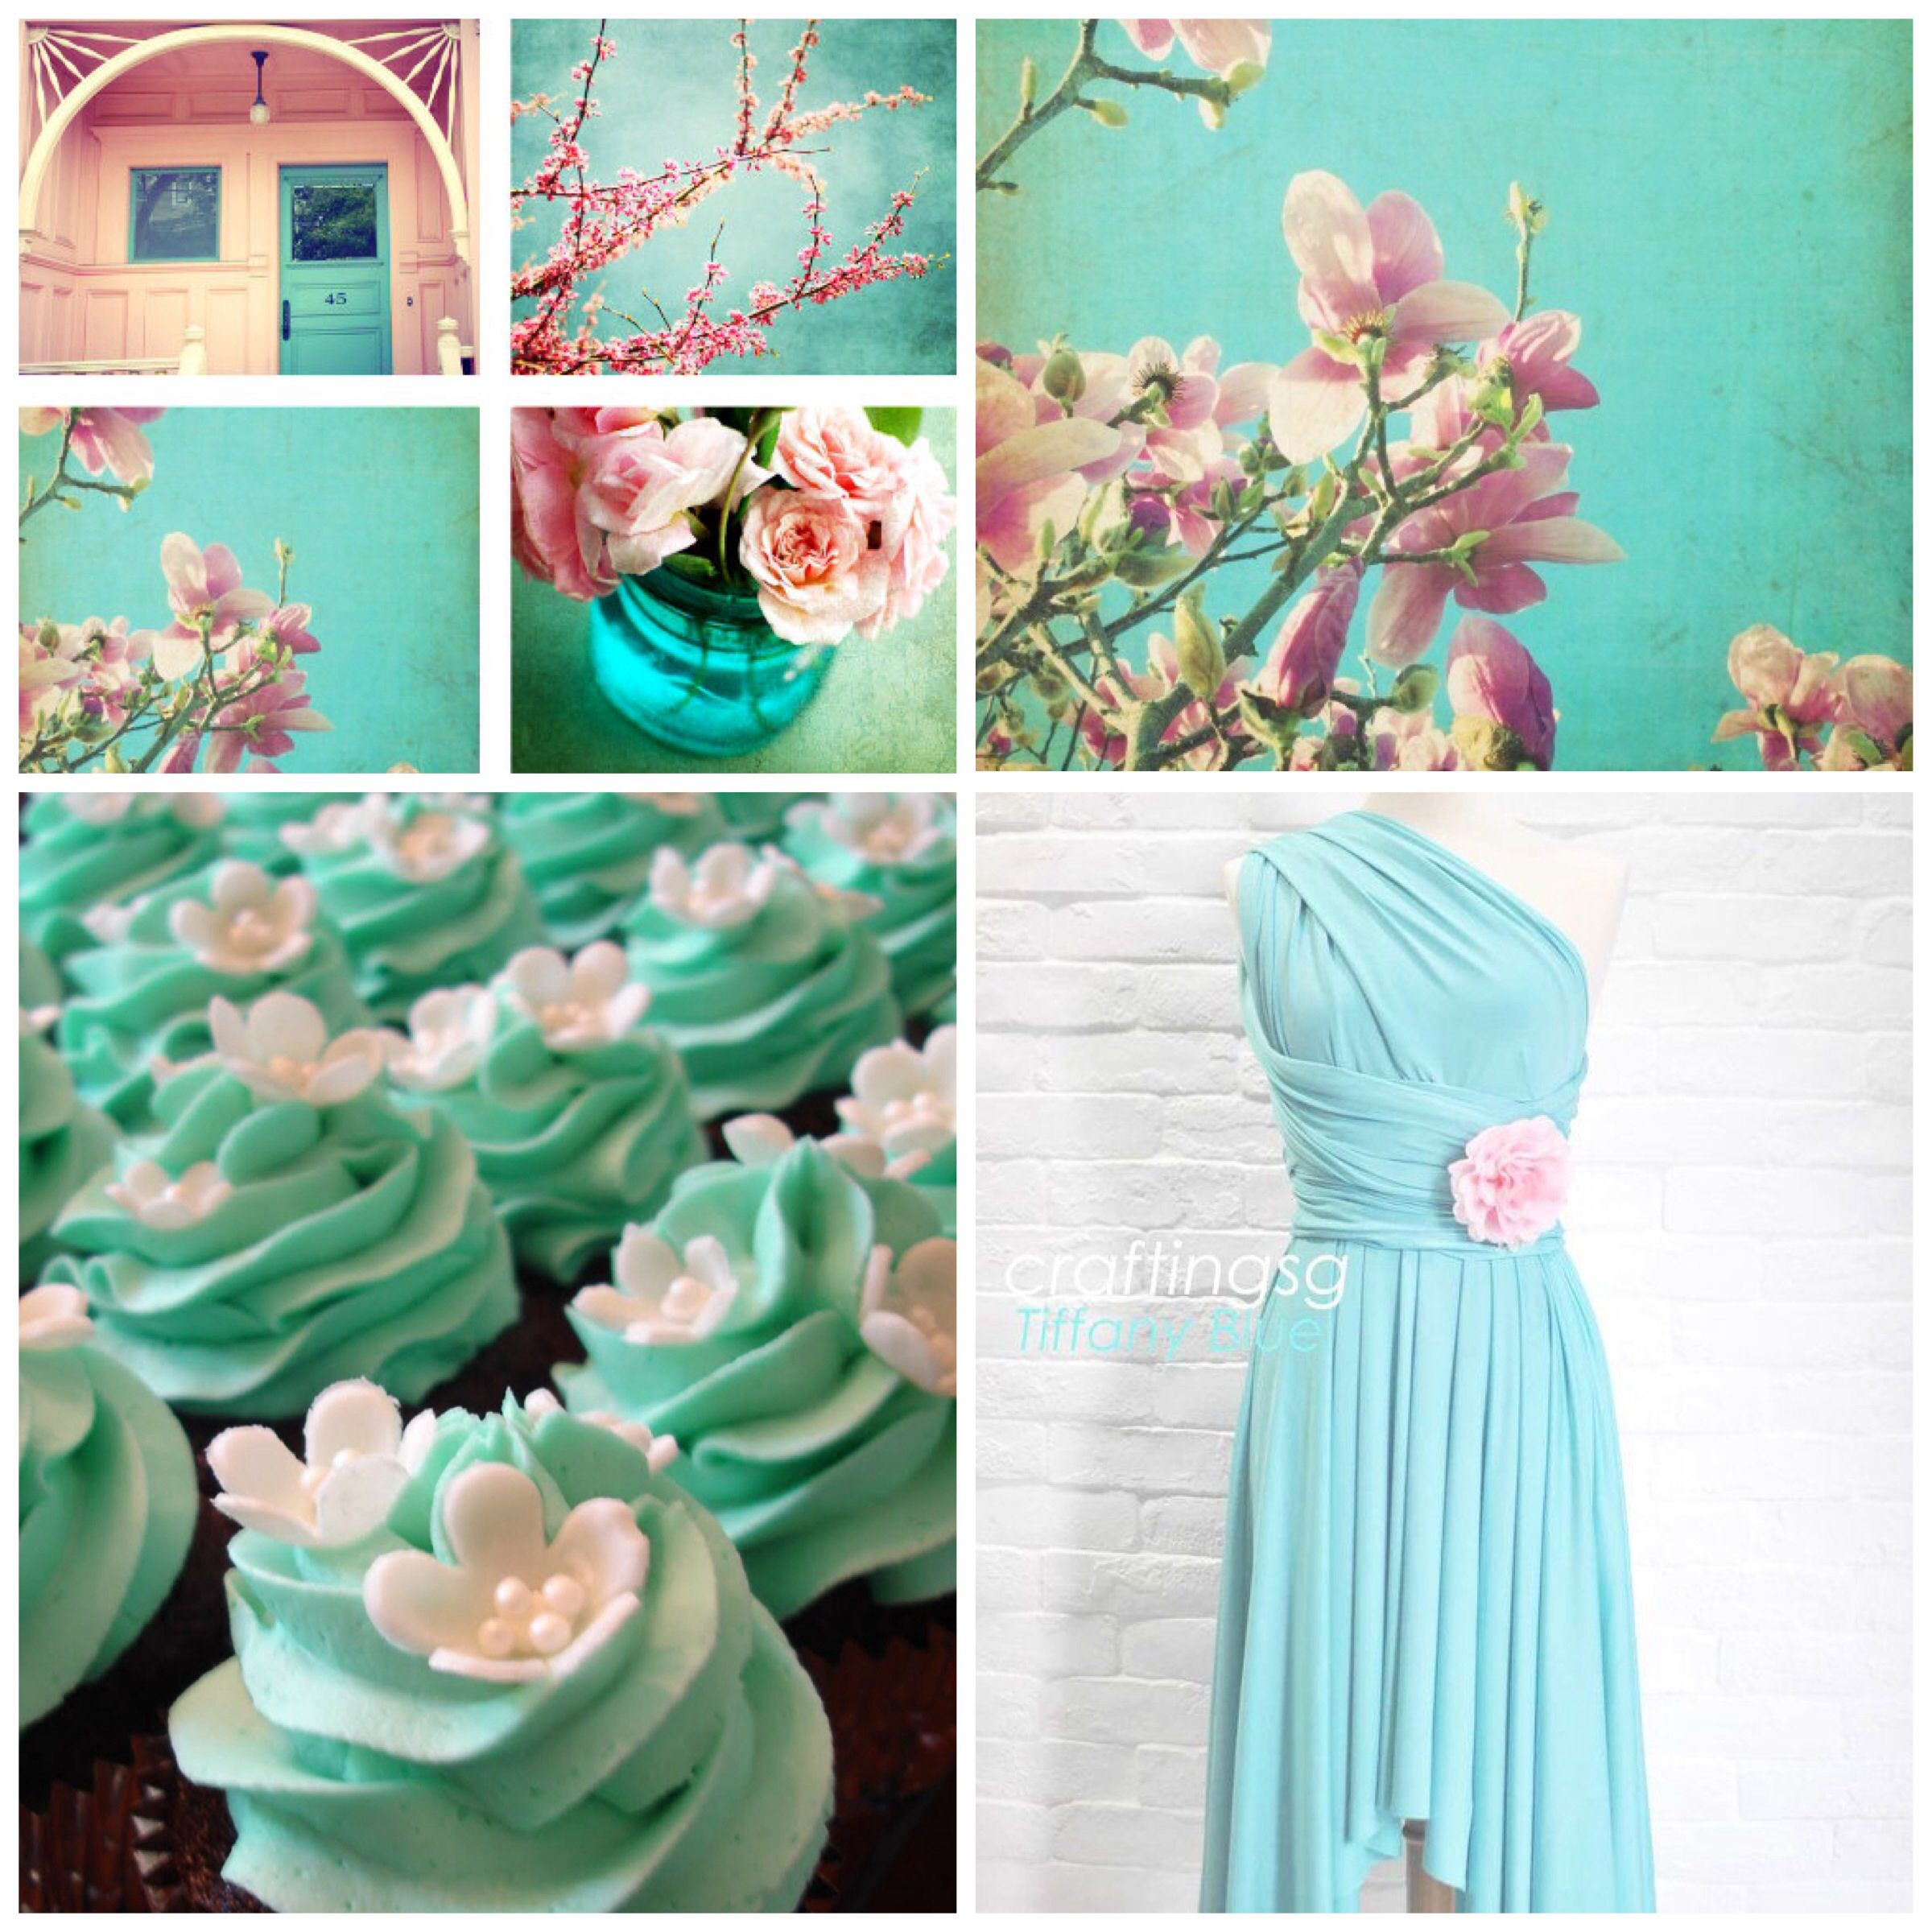 Tiffany blue and pink colour scheme for my late summer wedding :)